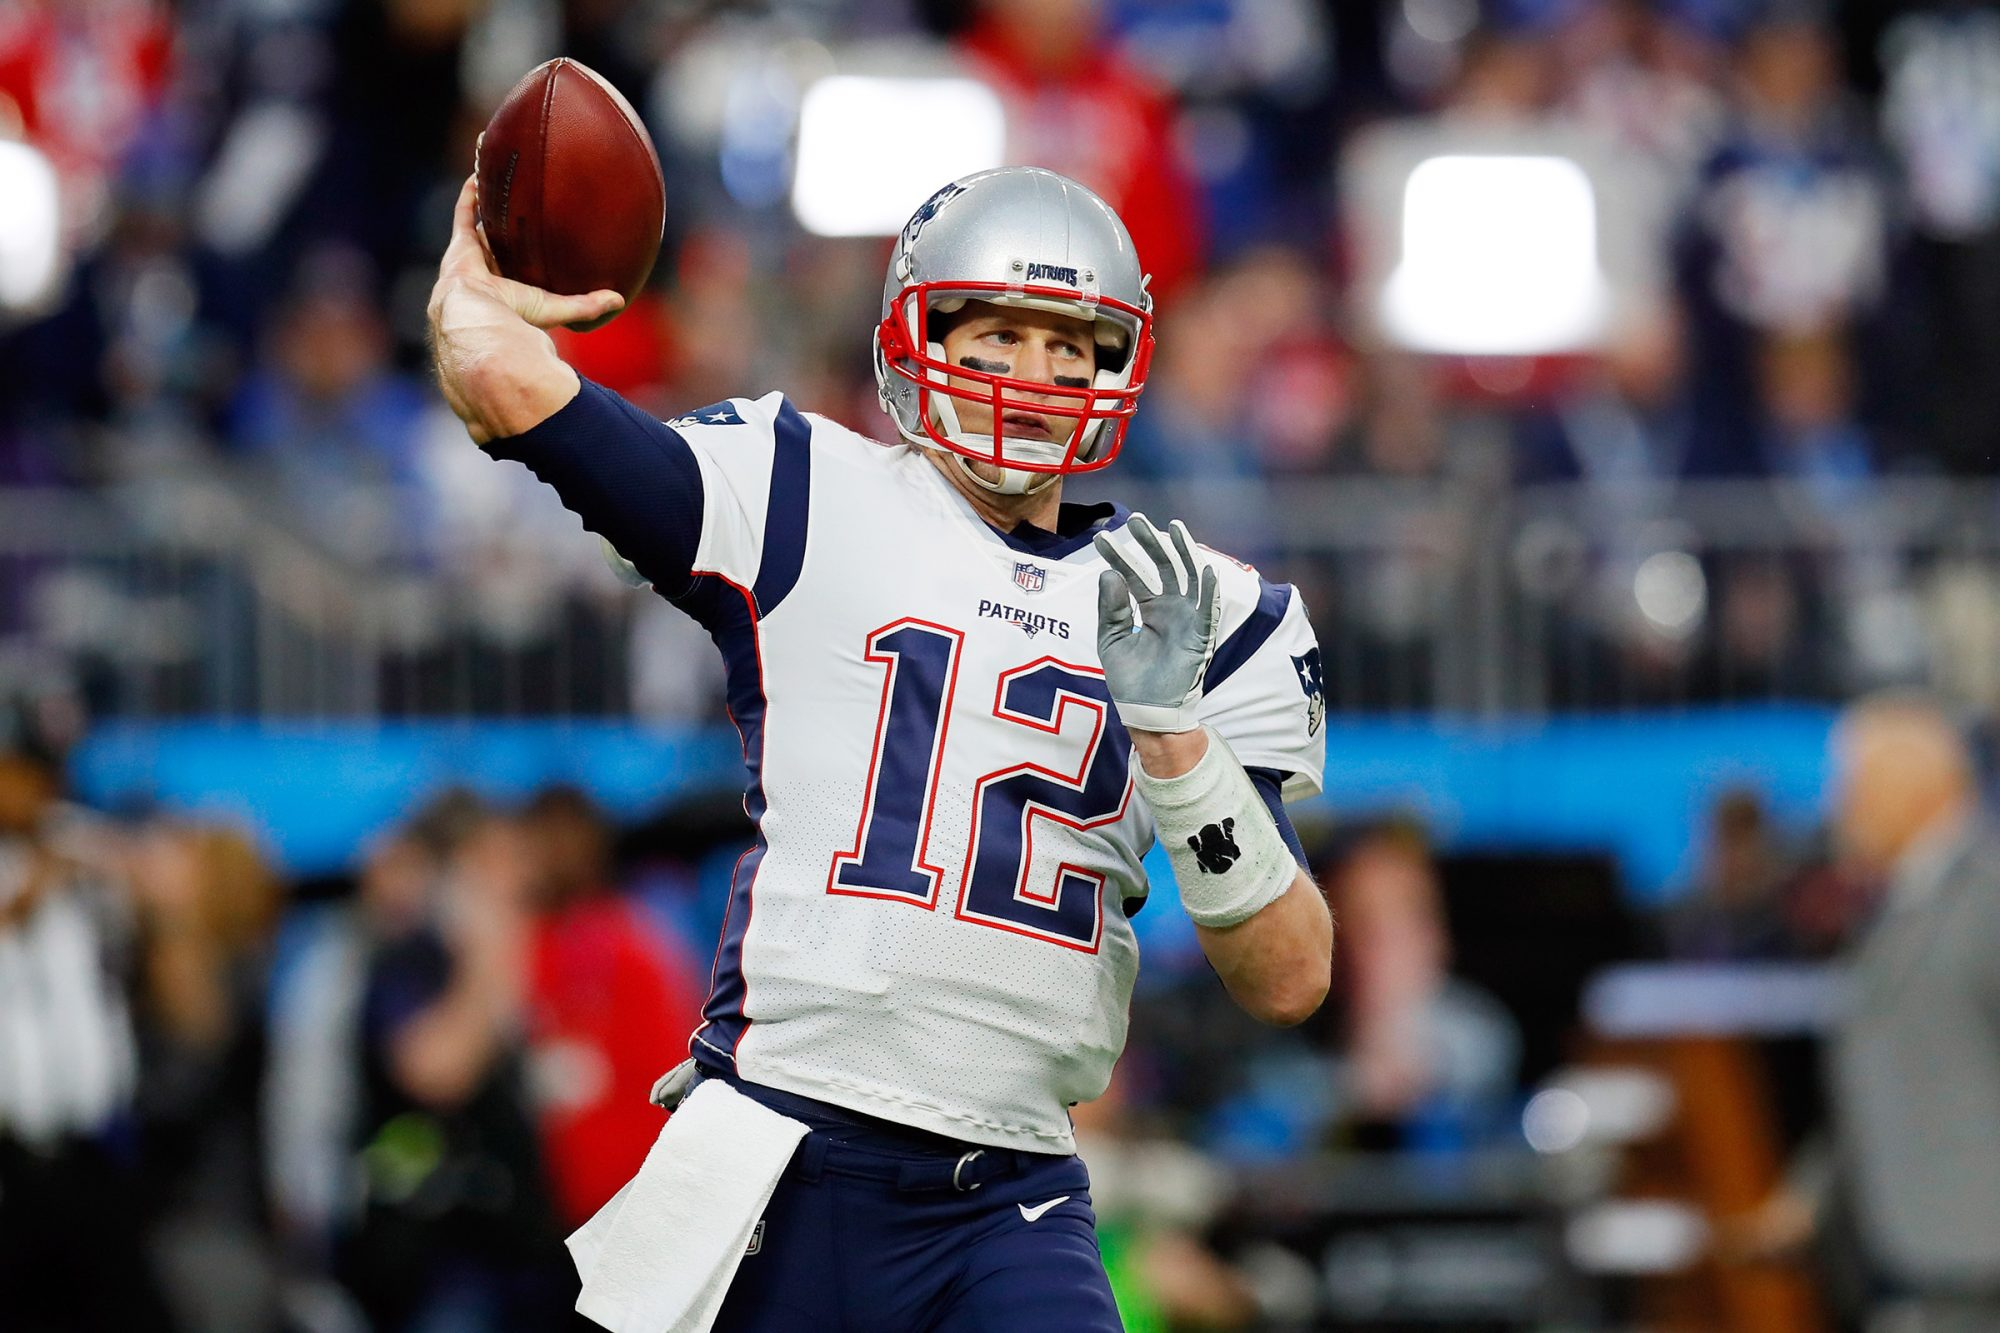 Tom Brady #12 of the New England Patriots warms up prior to Super Bowl LII